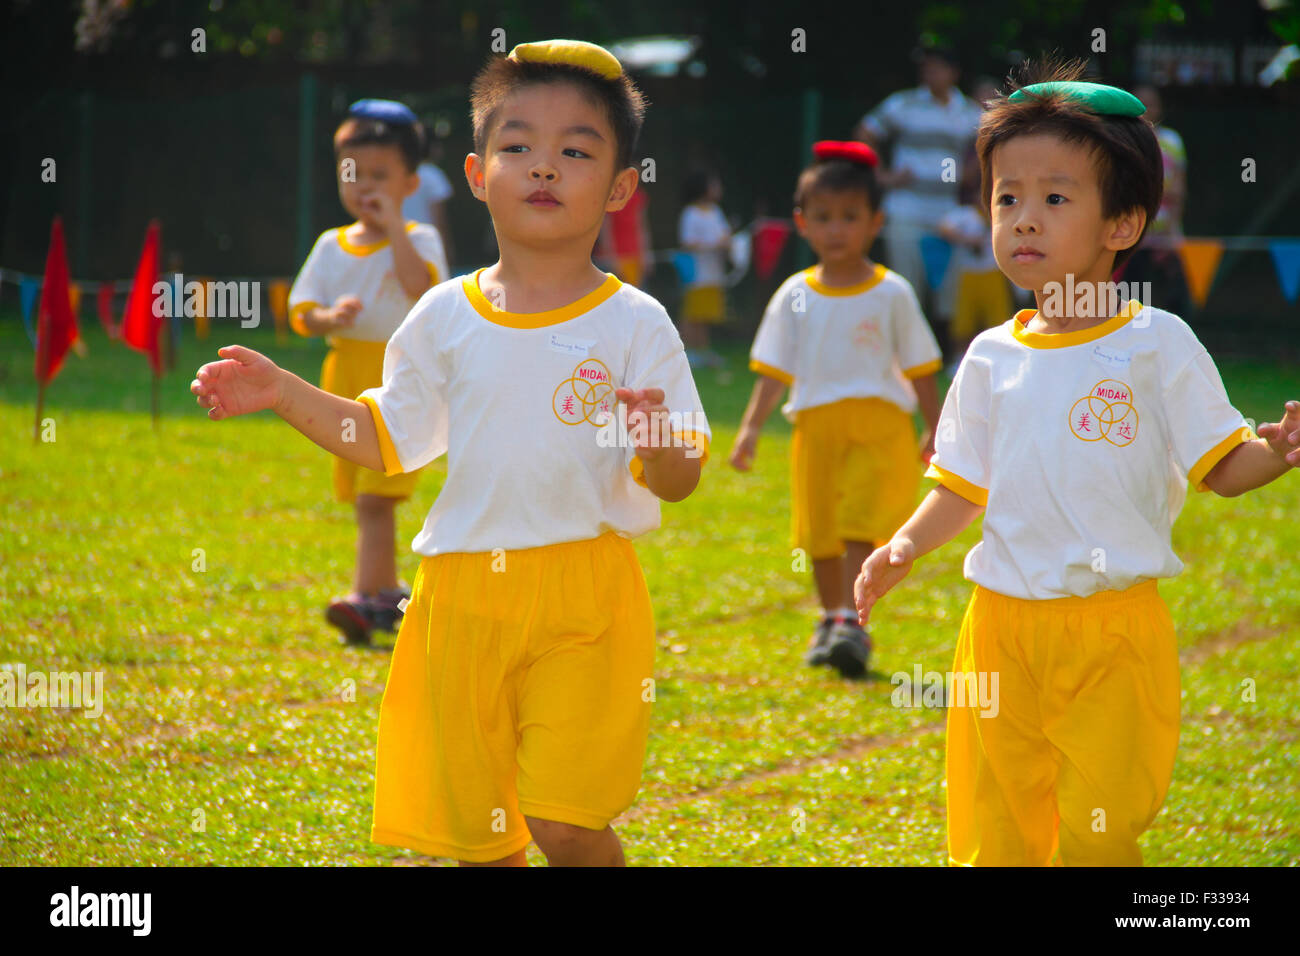 Kindergarten children competing in balancing bean bag race at their sport day. - Stock Image